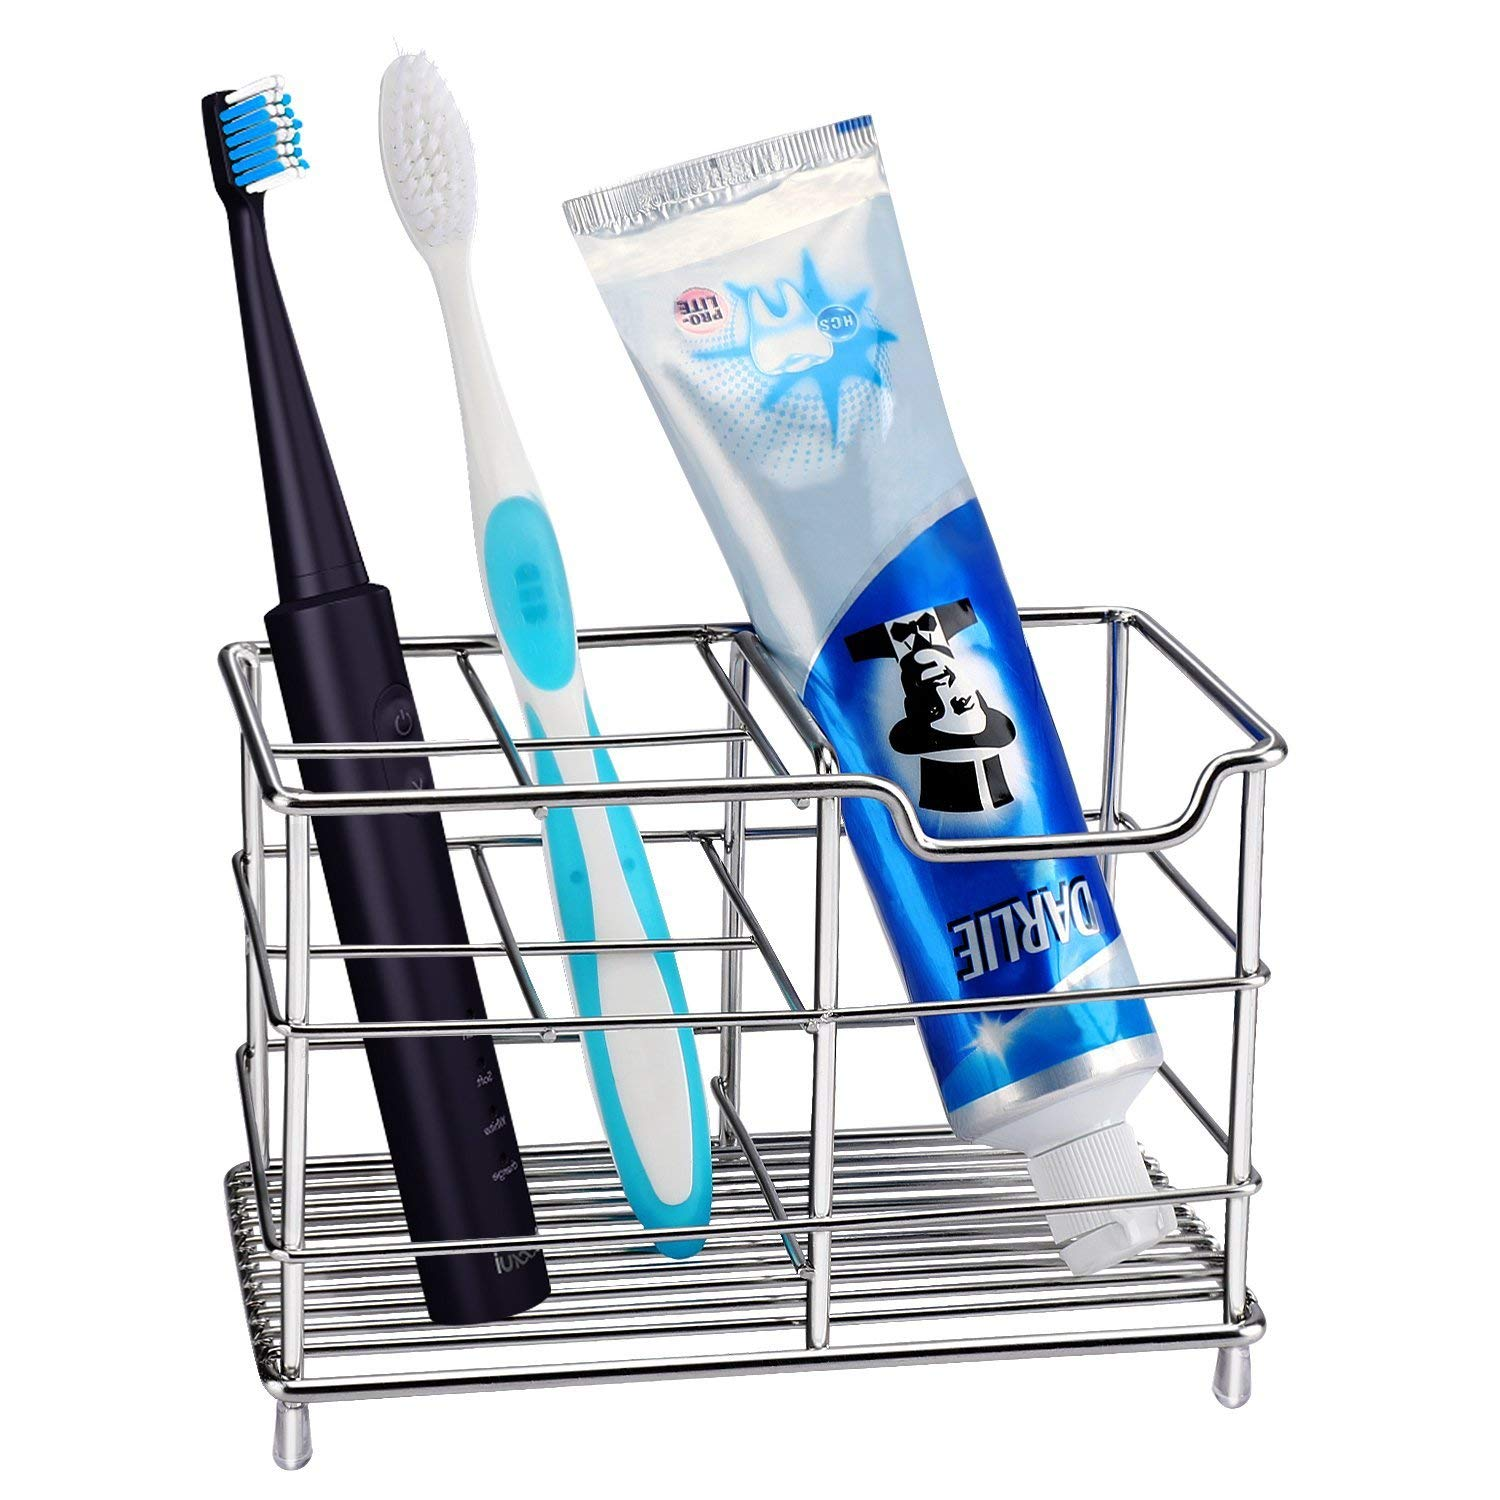 HOMEIDEAS 304 Stainless Steel Bathroom X-Large Electric Toothbrush Holder Toothpaste Holder Stand